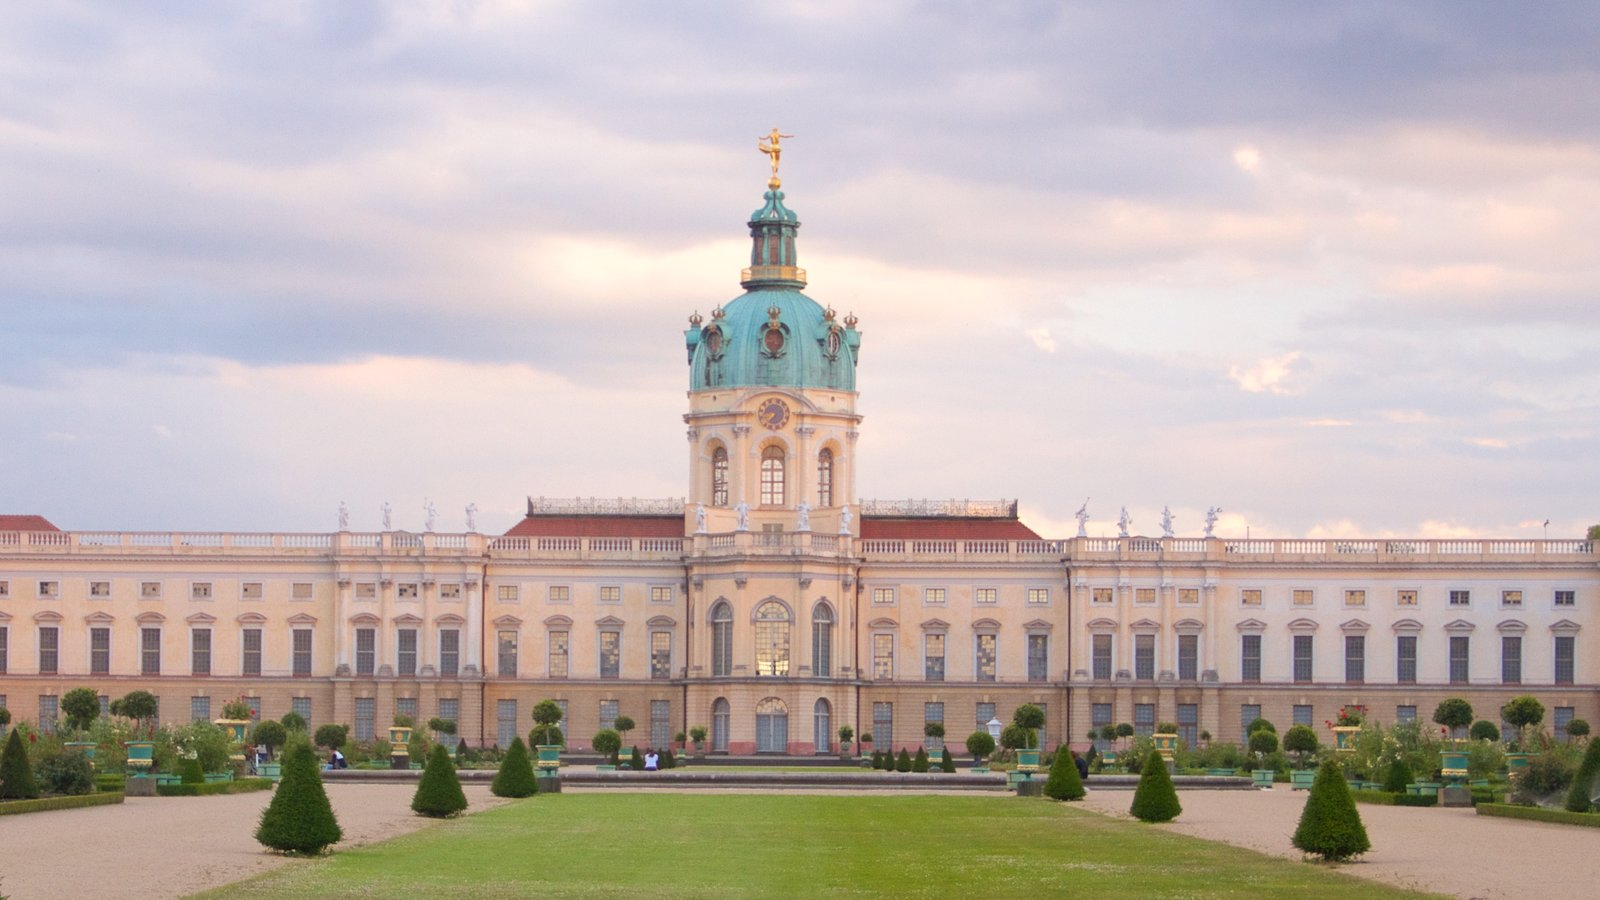 Schloss Charlottenburg featuring heritage architecture, chateau or palace and heritage elements